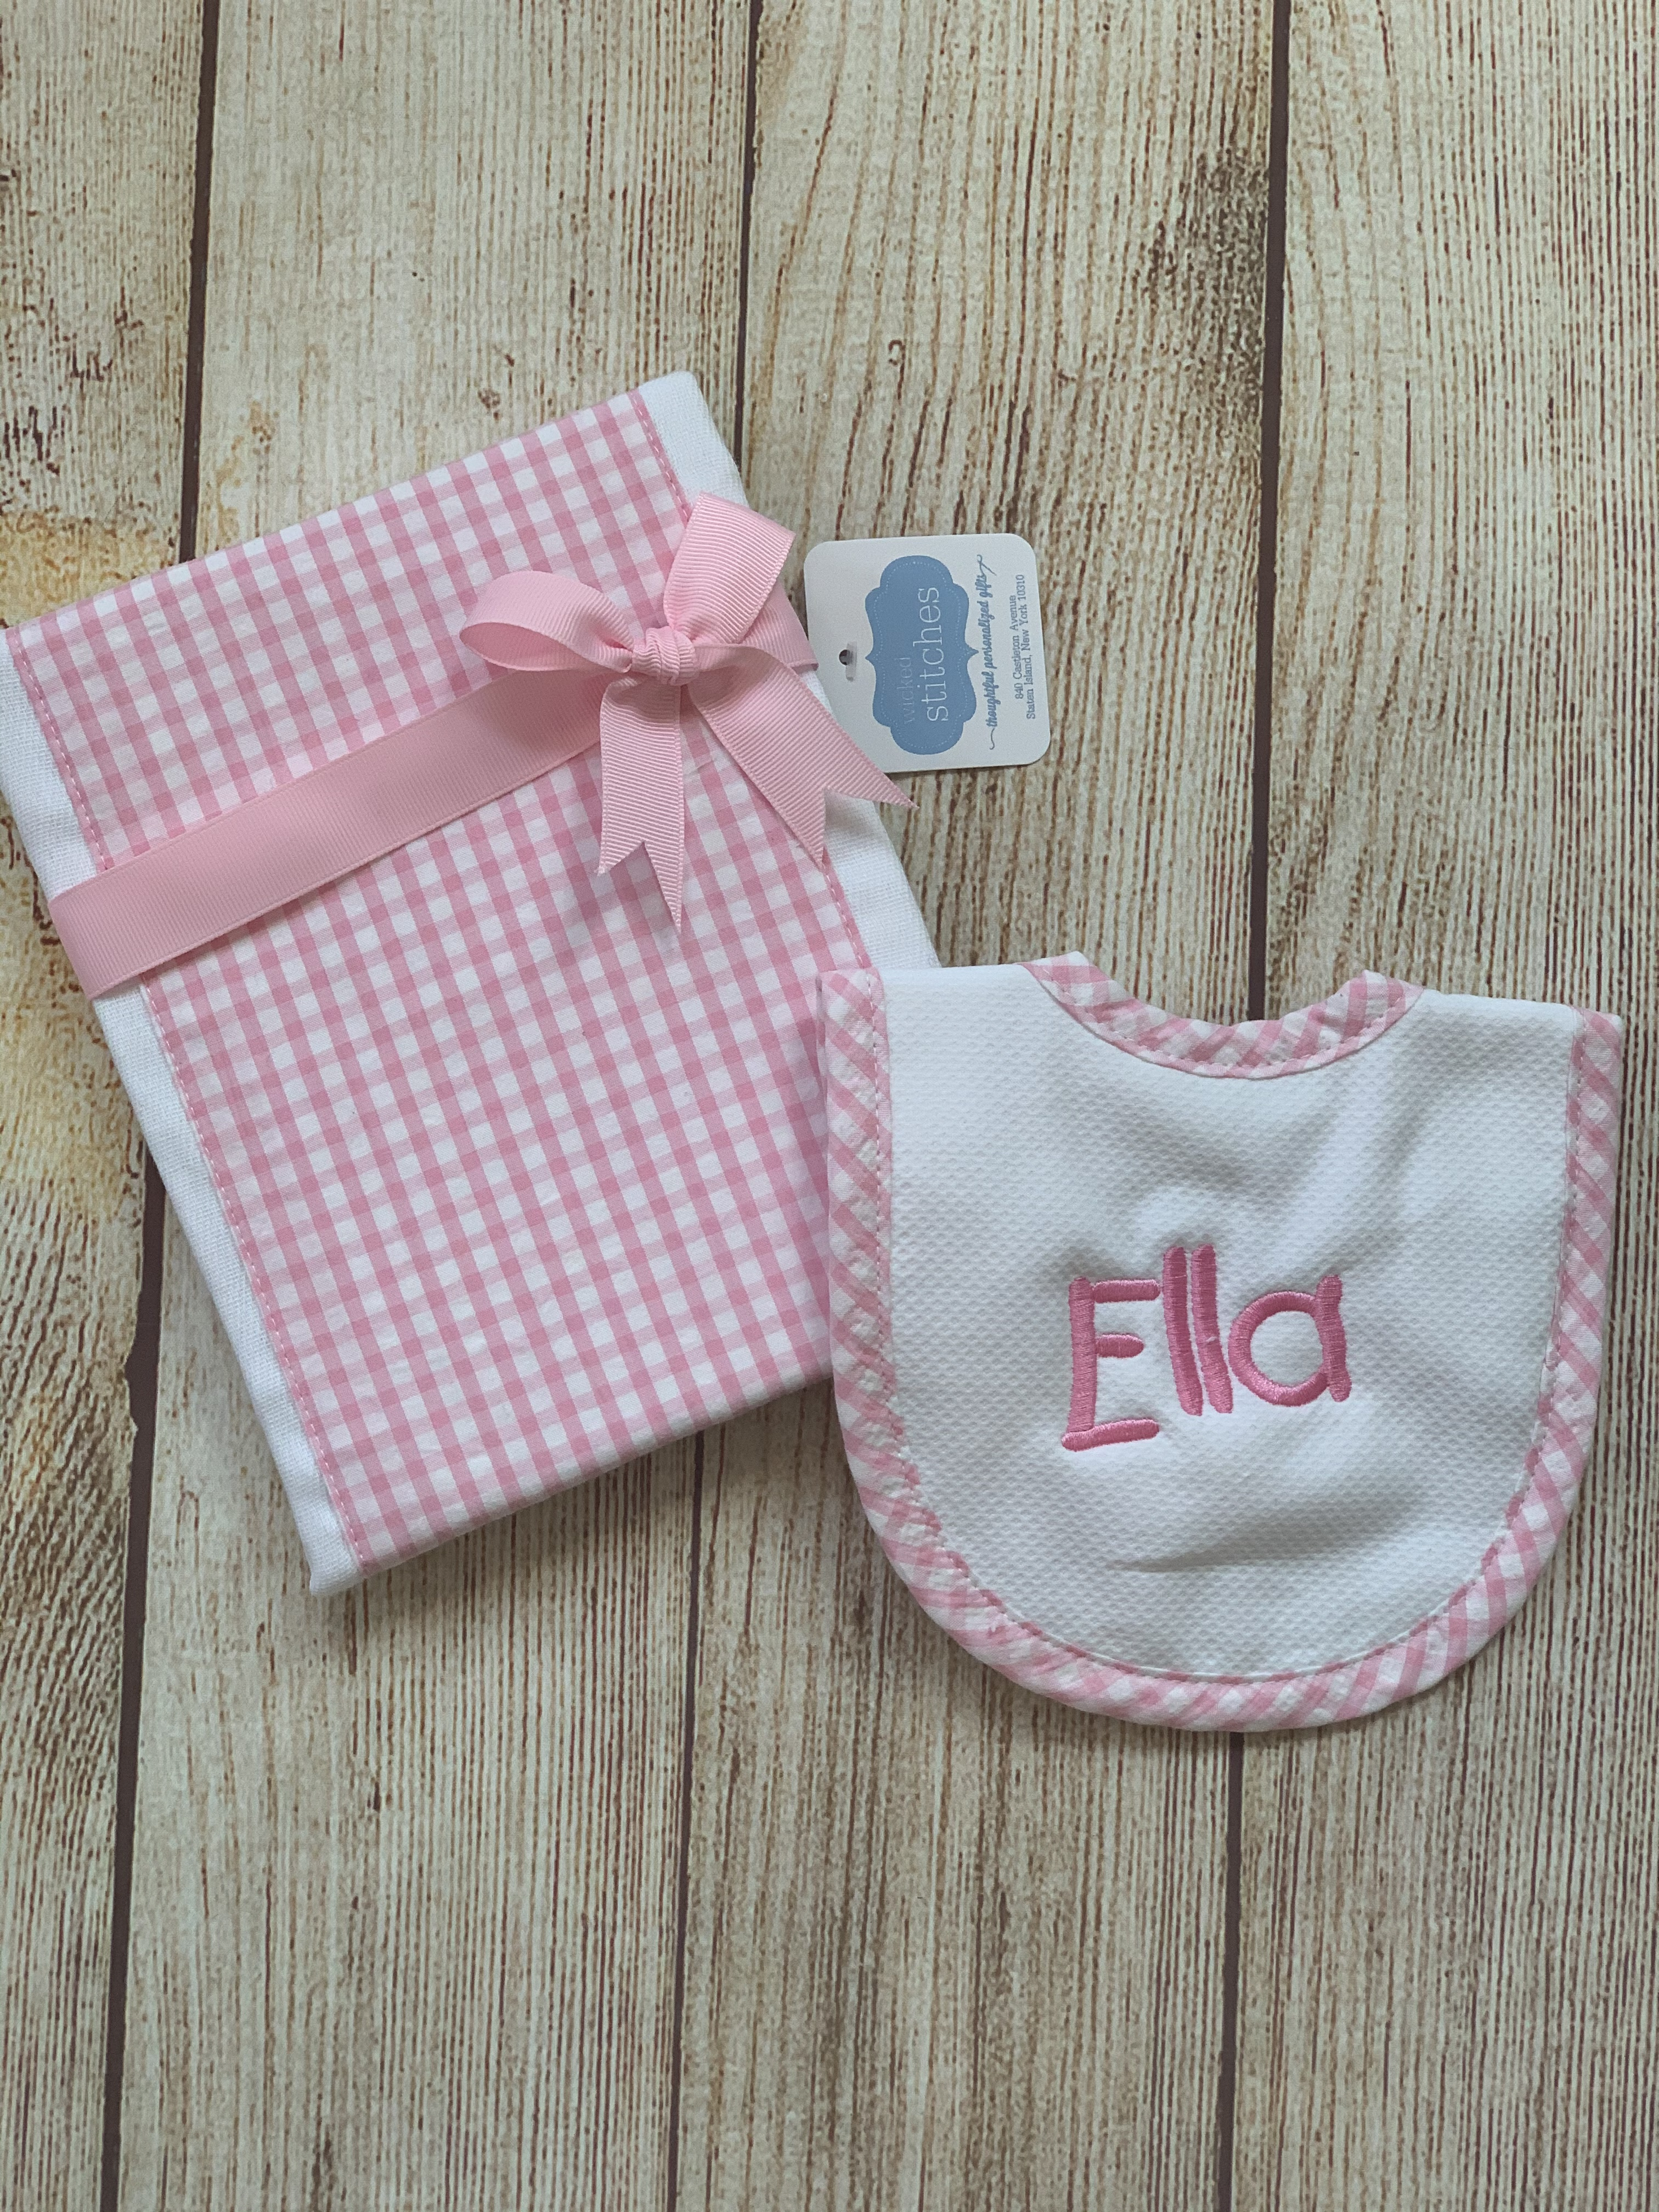 Great new baby gift, it comes wrapped up in clear cellophane or consider upgrading your wrap.  Newborn Feeder Bib and Burp Cloth set by Wicked Stitches Gifts